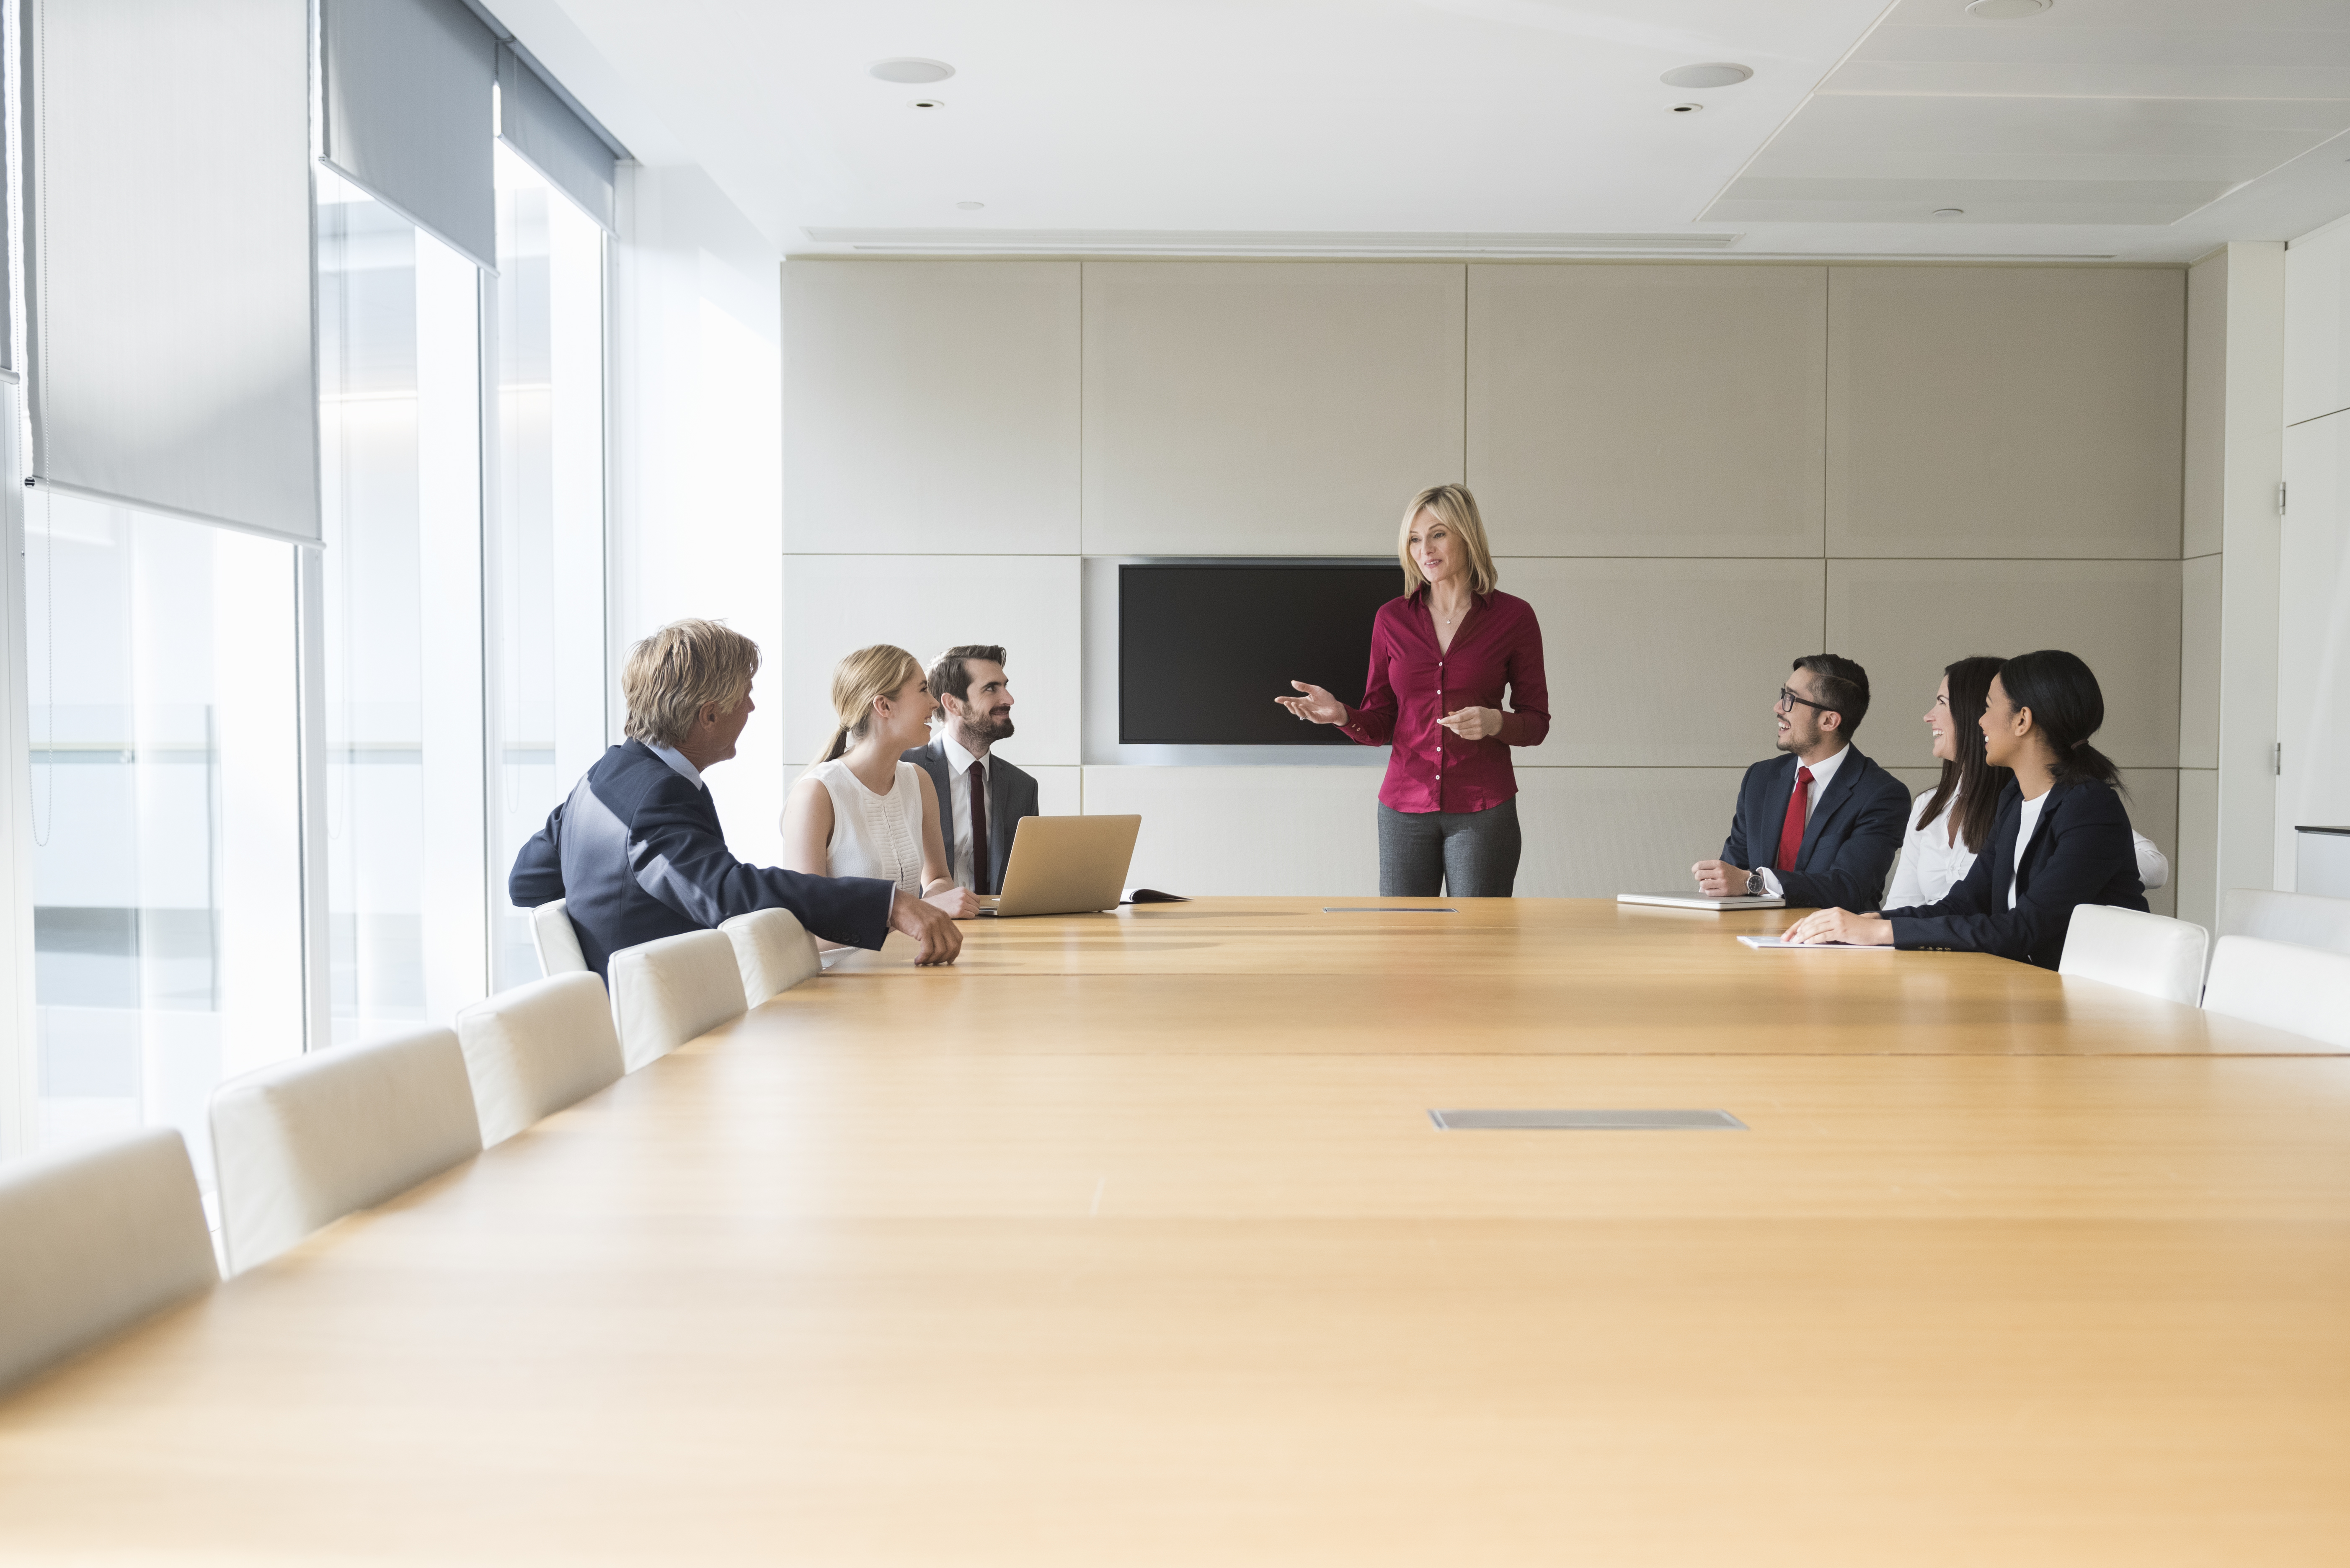 A photo of businesswoman giving presentation to colleagues at conference table. Professionals are in formals. Business people are in board room. Concentrated associates listening to presentation, in a brightly lit modern office.